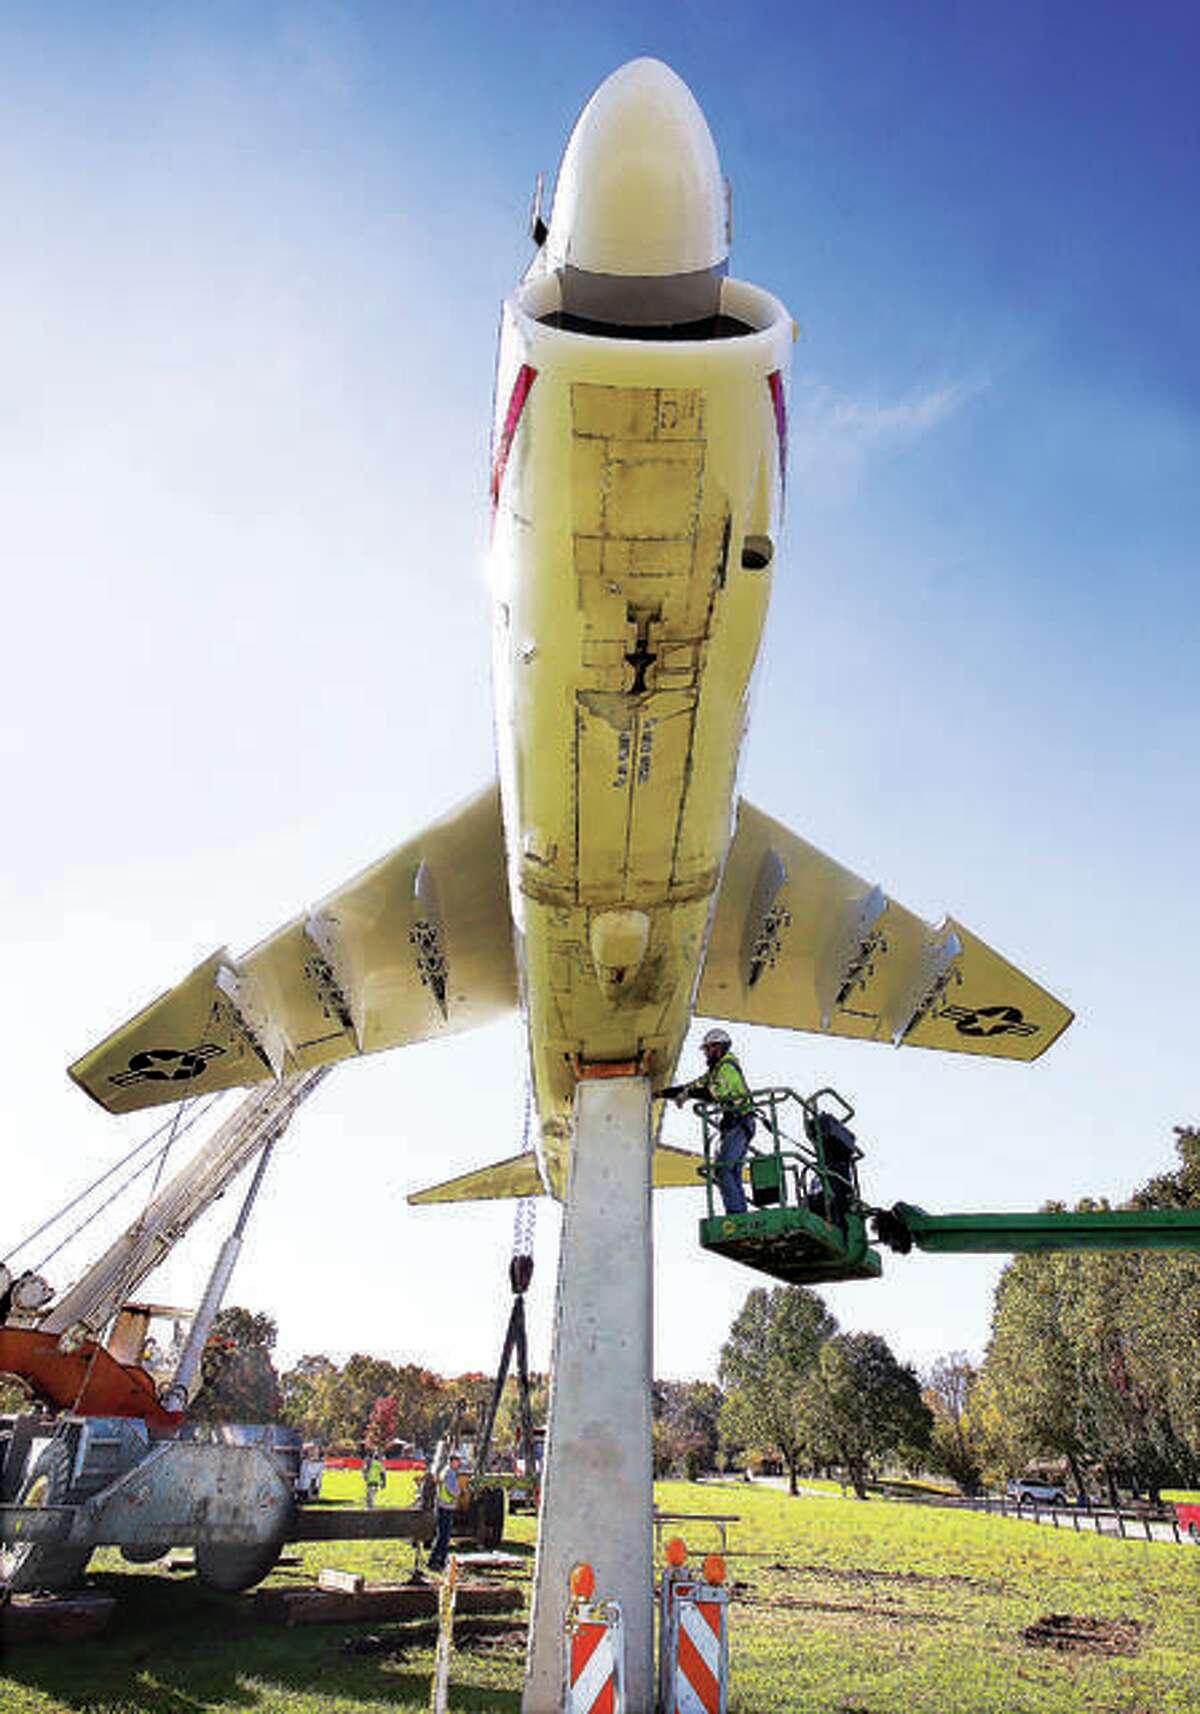 Edwardsville Township officials announced that the park will reopen Monday to half-capacity in most places. The park, which is well-known locally for its fighter jet, has been closed since March. The jet was refurbished in 2017. Only 15 E version A-7's are on display around the United States.